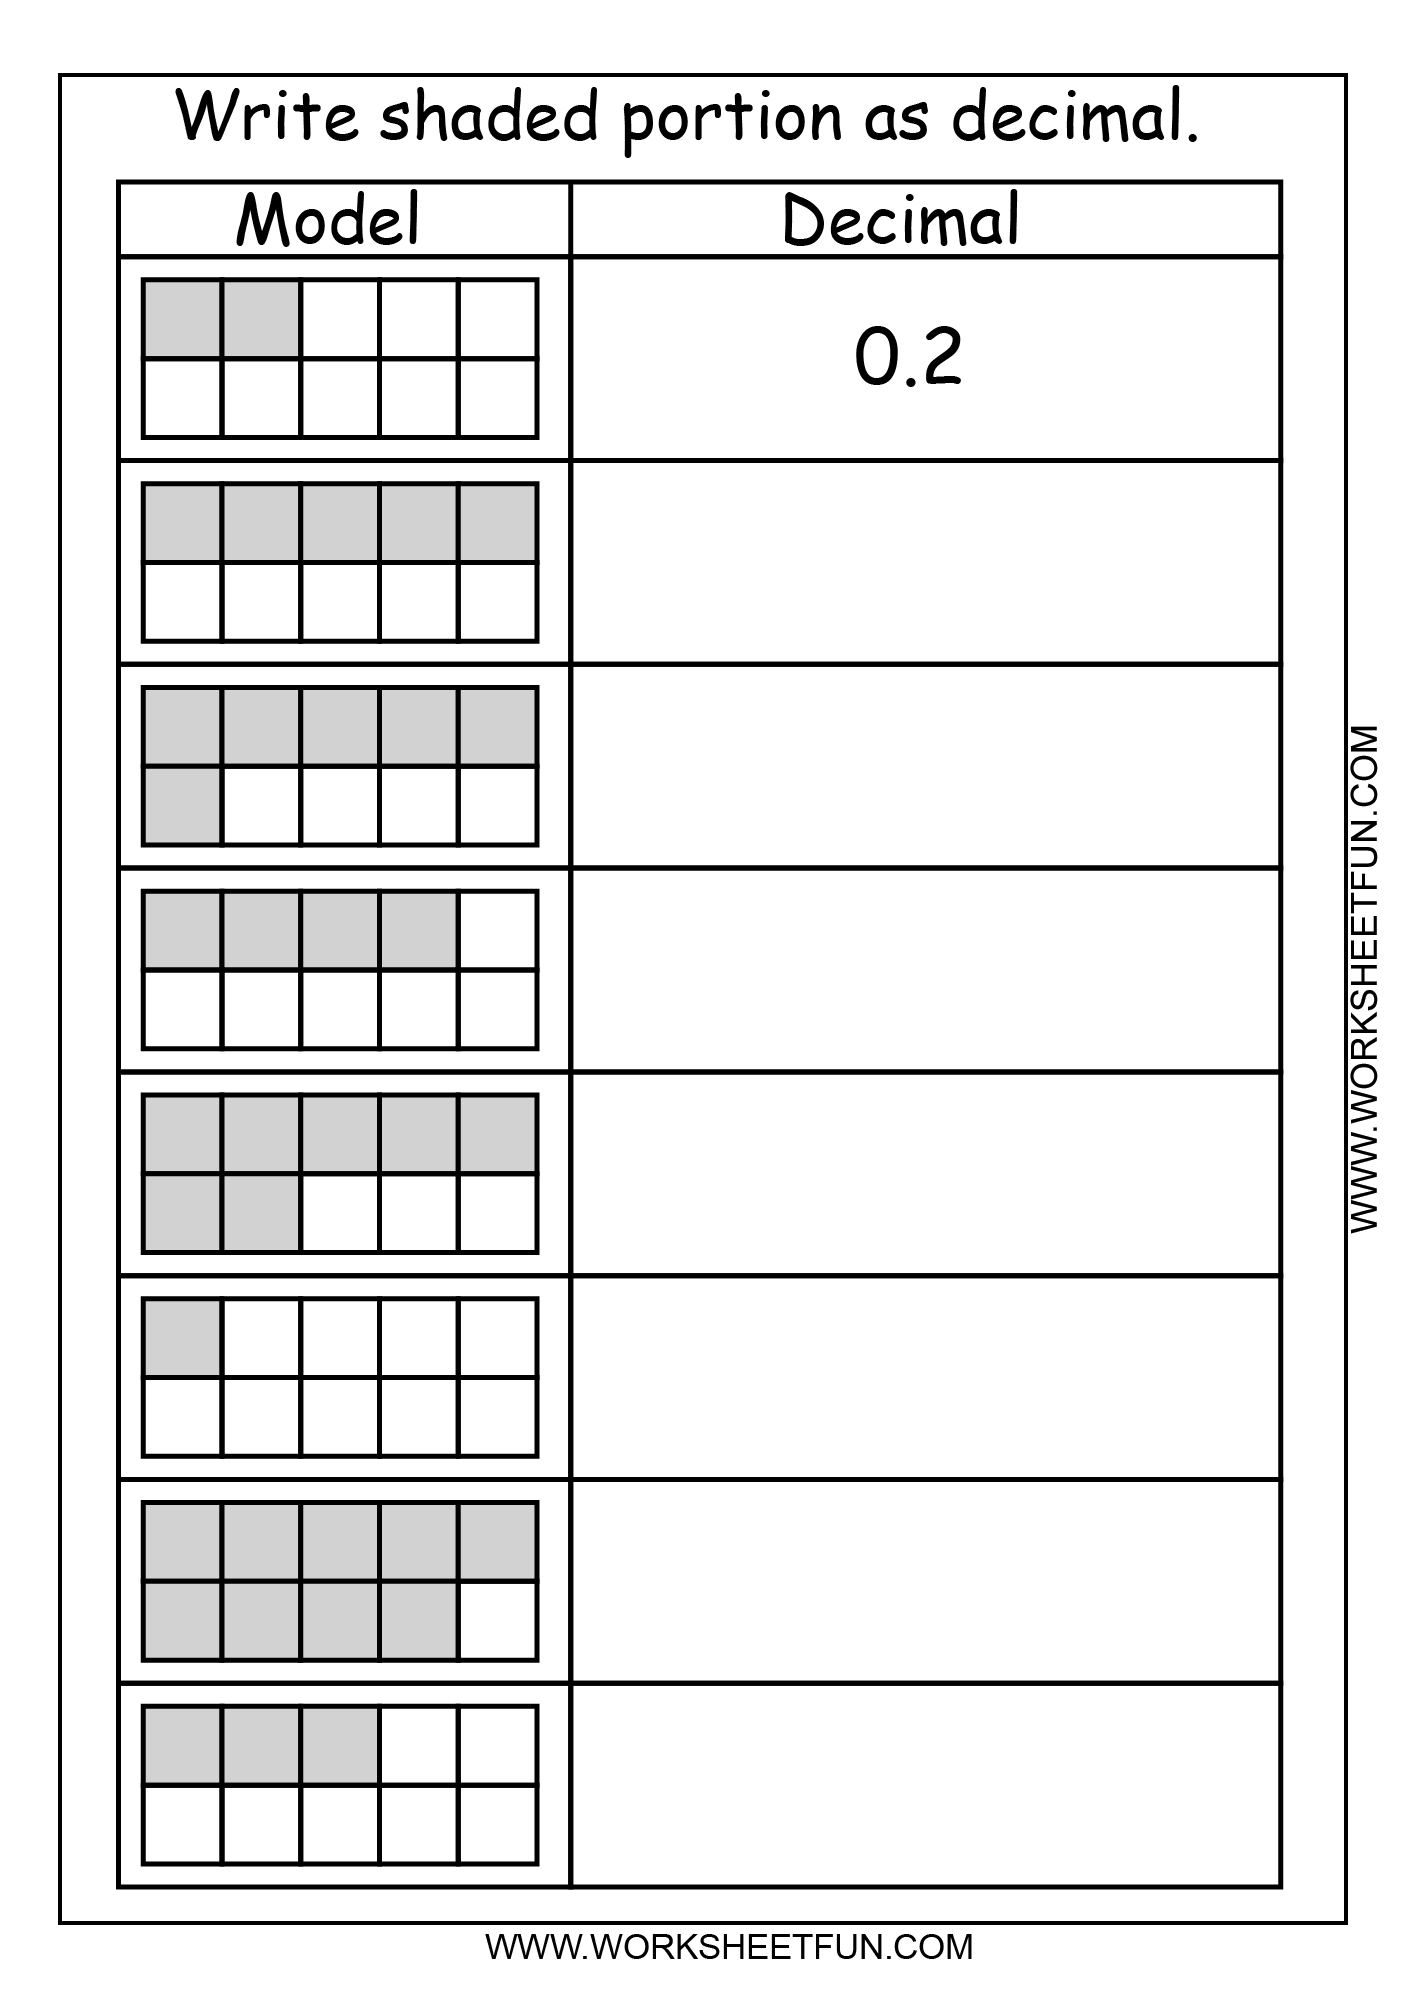 Mixed Modals Board Game Worksheet